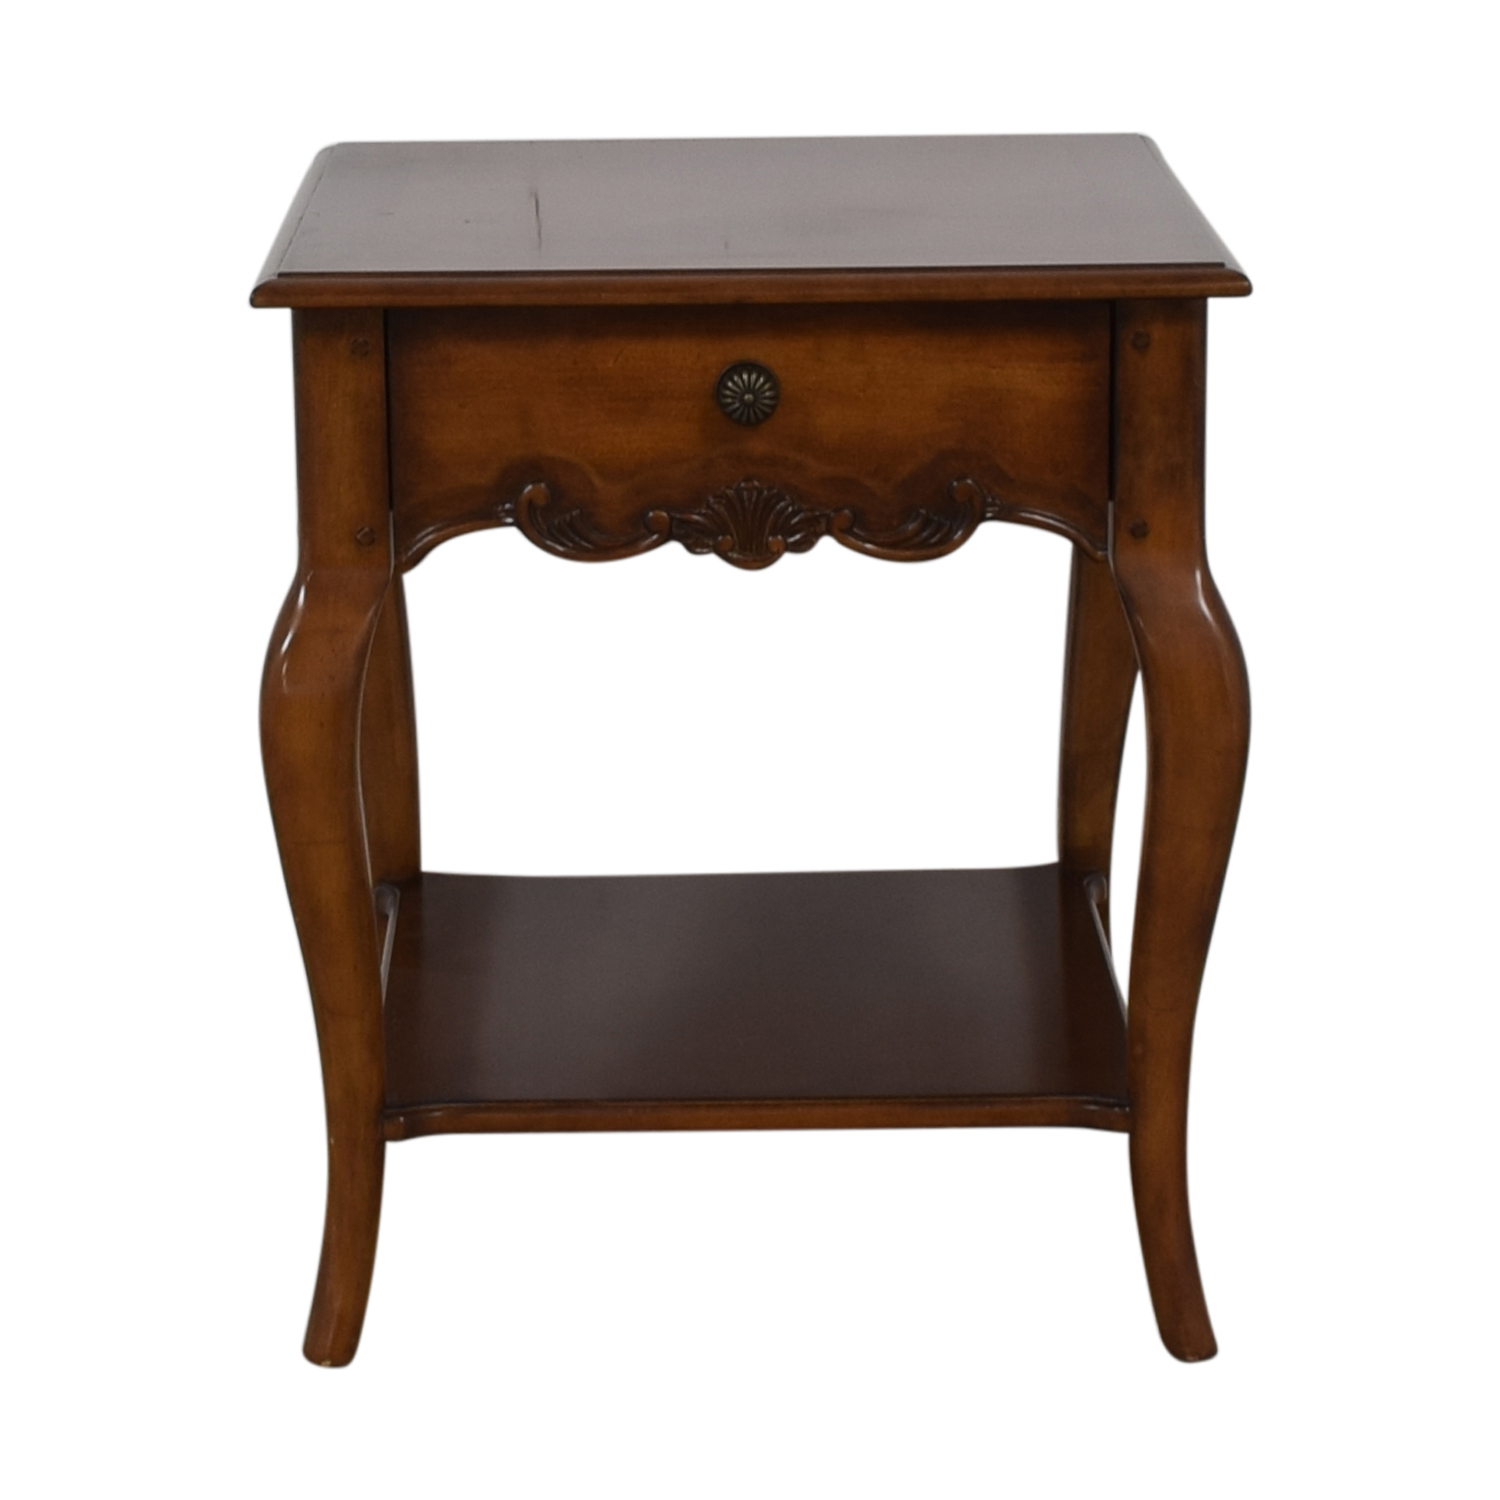 Drexel Heritage Furniture End Table Drexel Heritage Furniture